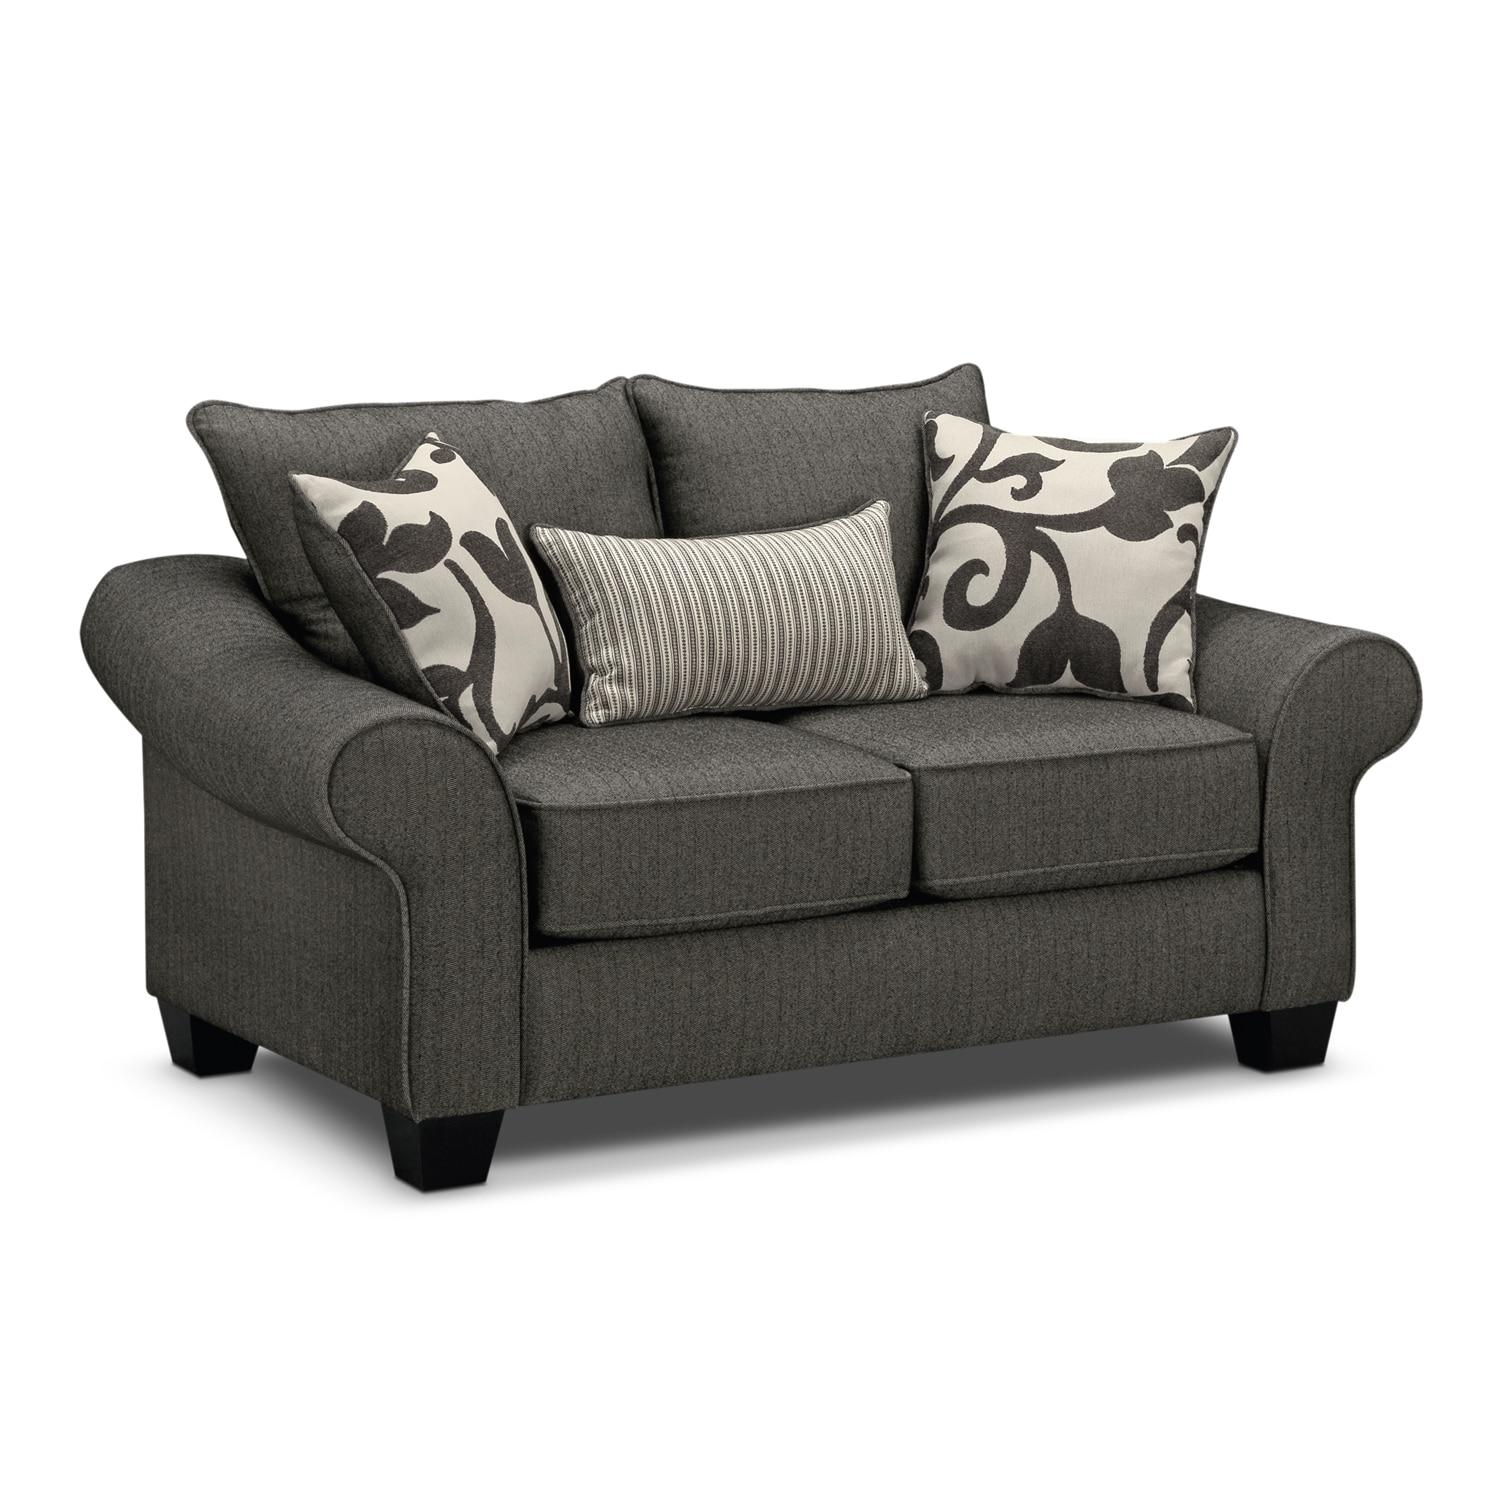 Colette Sofa, Loveseat And Accent Chair Set – Gray | American Regarding Sofa And Accent Chair Set (View 16 of 20)